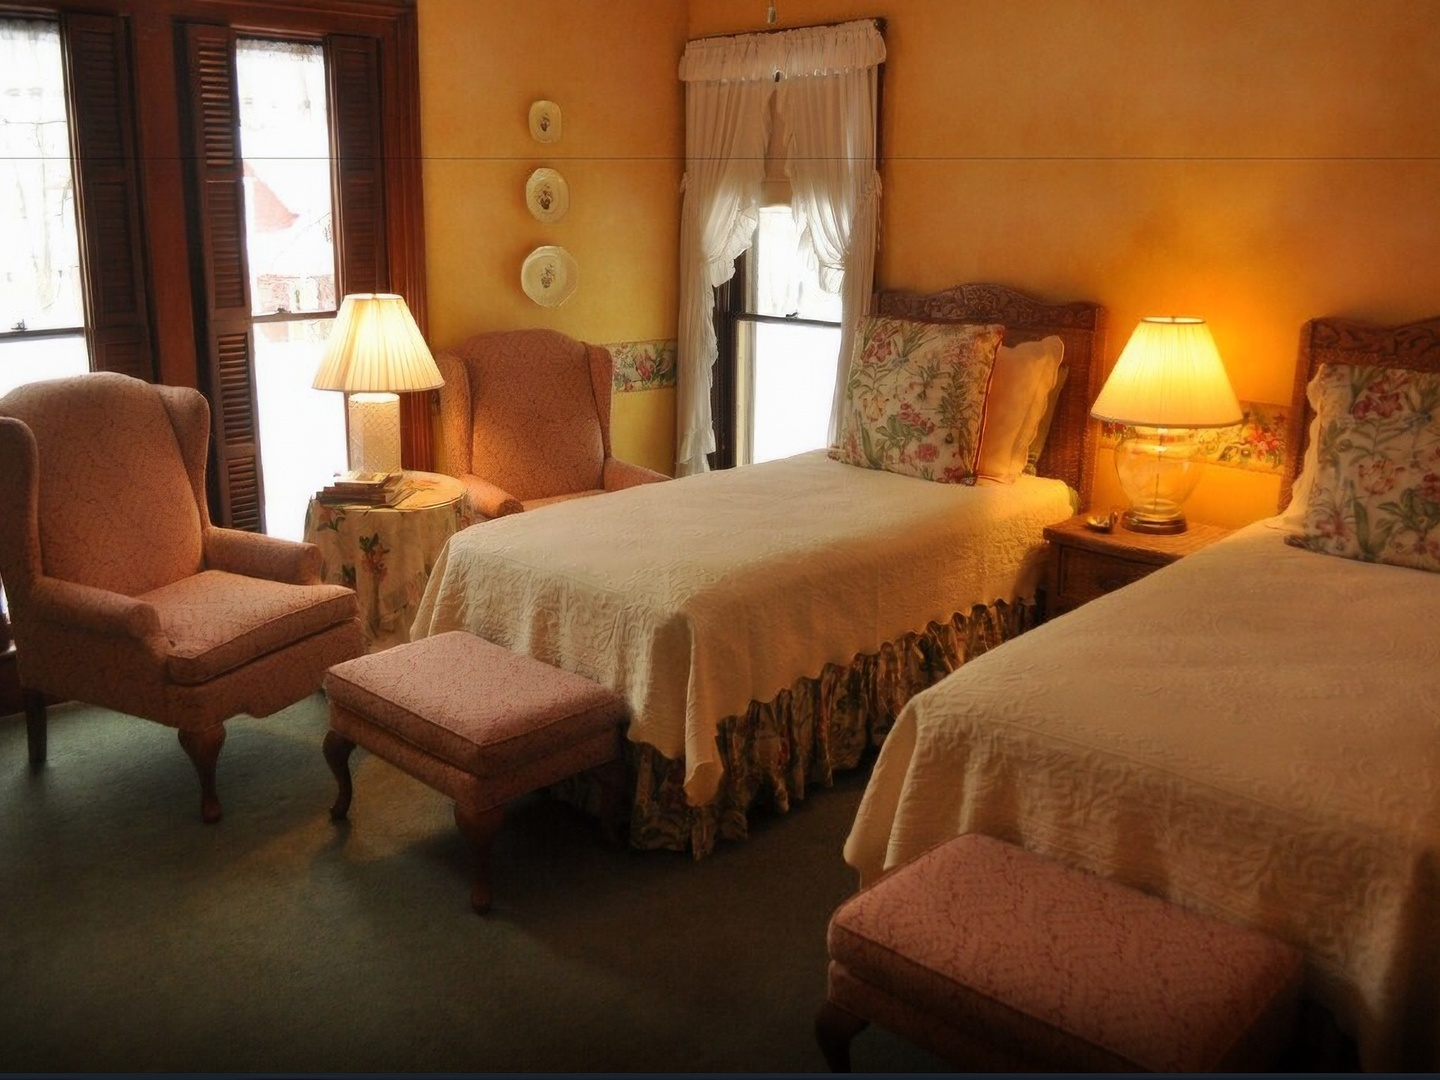 A bedroom with a large bed in a hotel room at White Swan Inn B&B.